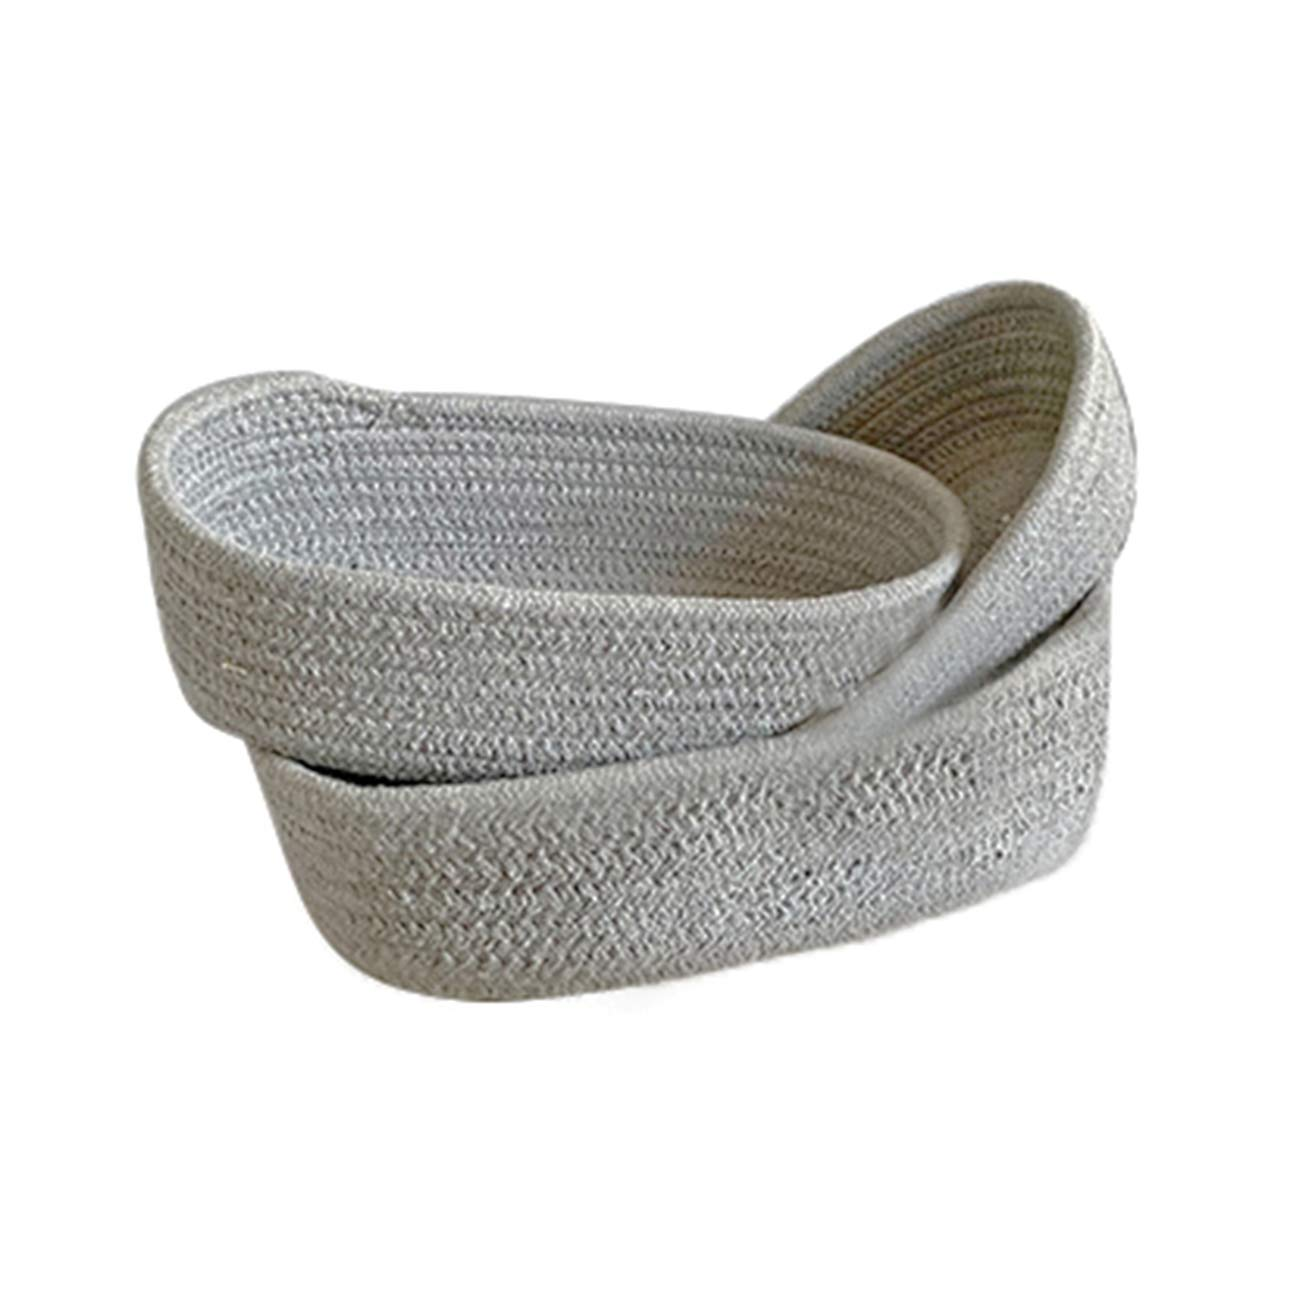 Newsea Woven Rope Basket 3 Pack Cotton Diaper Caddy Organizer Bin Nursery Laundry Storage for Toy,Towels,Blanket,Clothes,Baby Boy Girl Gift for Home Bathroom Shower Living Room Bathroom,Gray